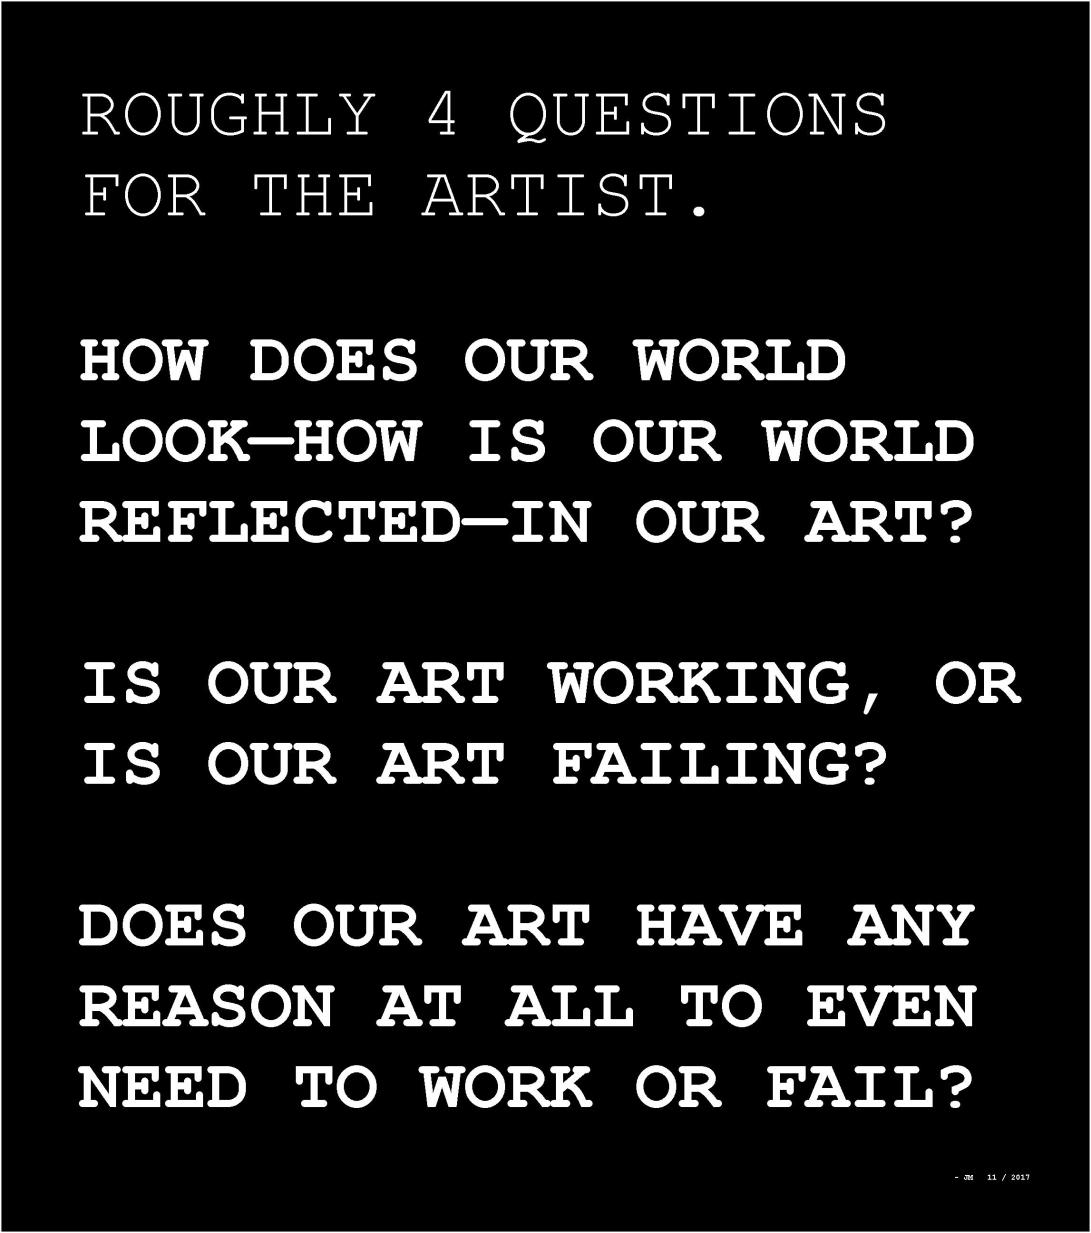 Roughly 4 questions for the artist. JM 11.2017